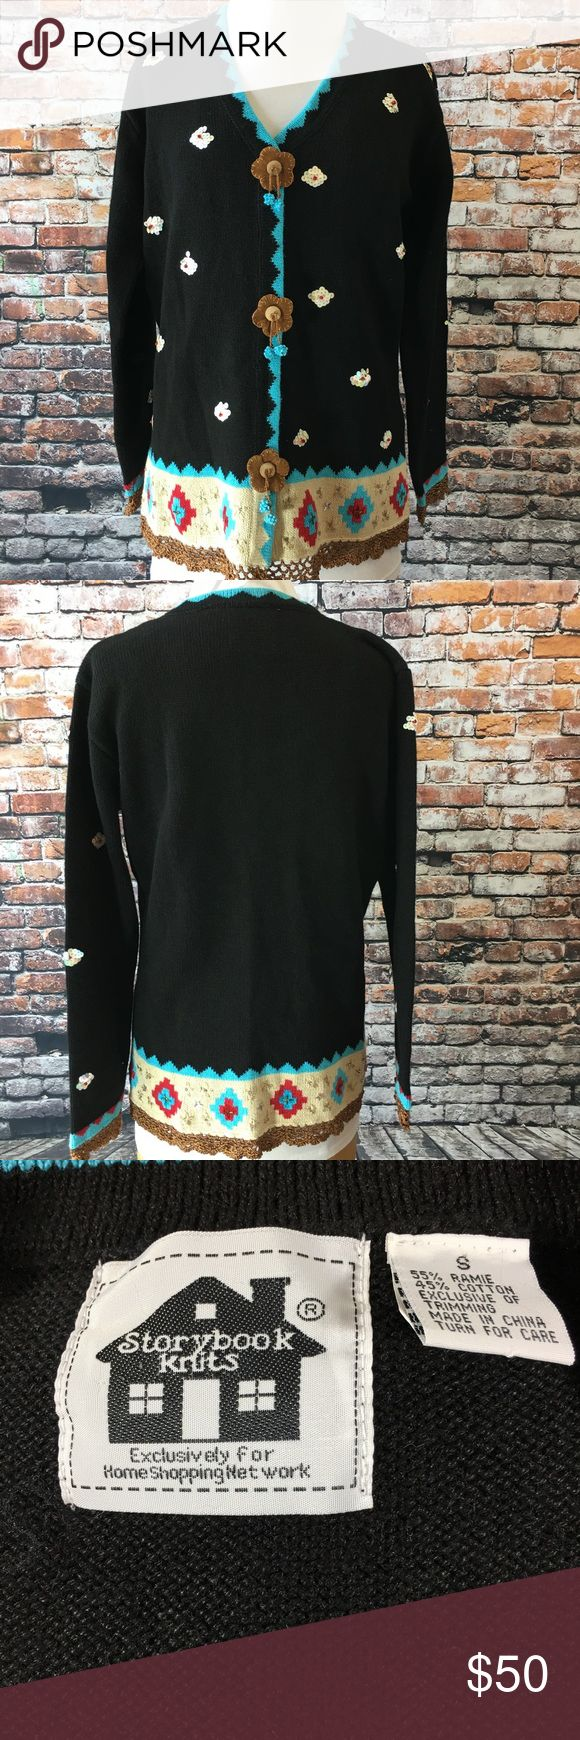 "Storybook Knits HSN Santa Fe Cardigan Concho Storybook Knits by HSN Home Shopping Network Santa Fe Spirit Sweater  Size Small  Heavily embellished with sequins, beading, crochet and (faux?)suede conchos Perfect fall look with jeans and boots Approximate measurements (inches): Bust: 19.5"" (measured flat across front) Sleeves: 21"" Length: 24"" Storybook Knits Sweaters Cardigans"